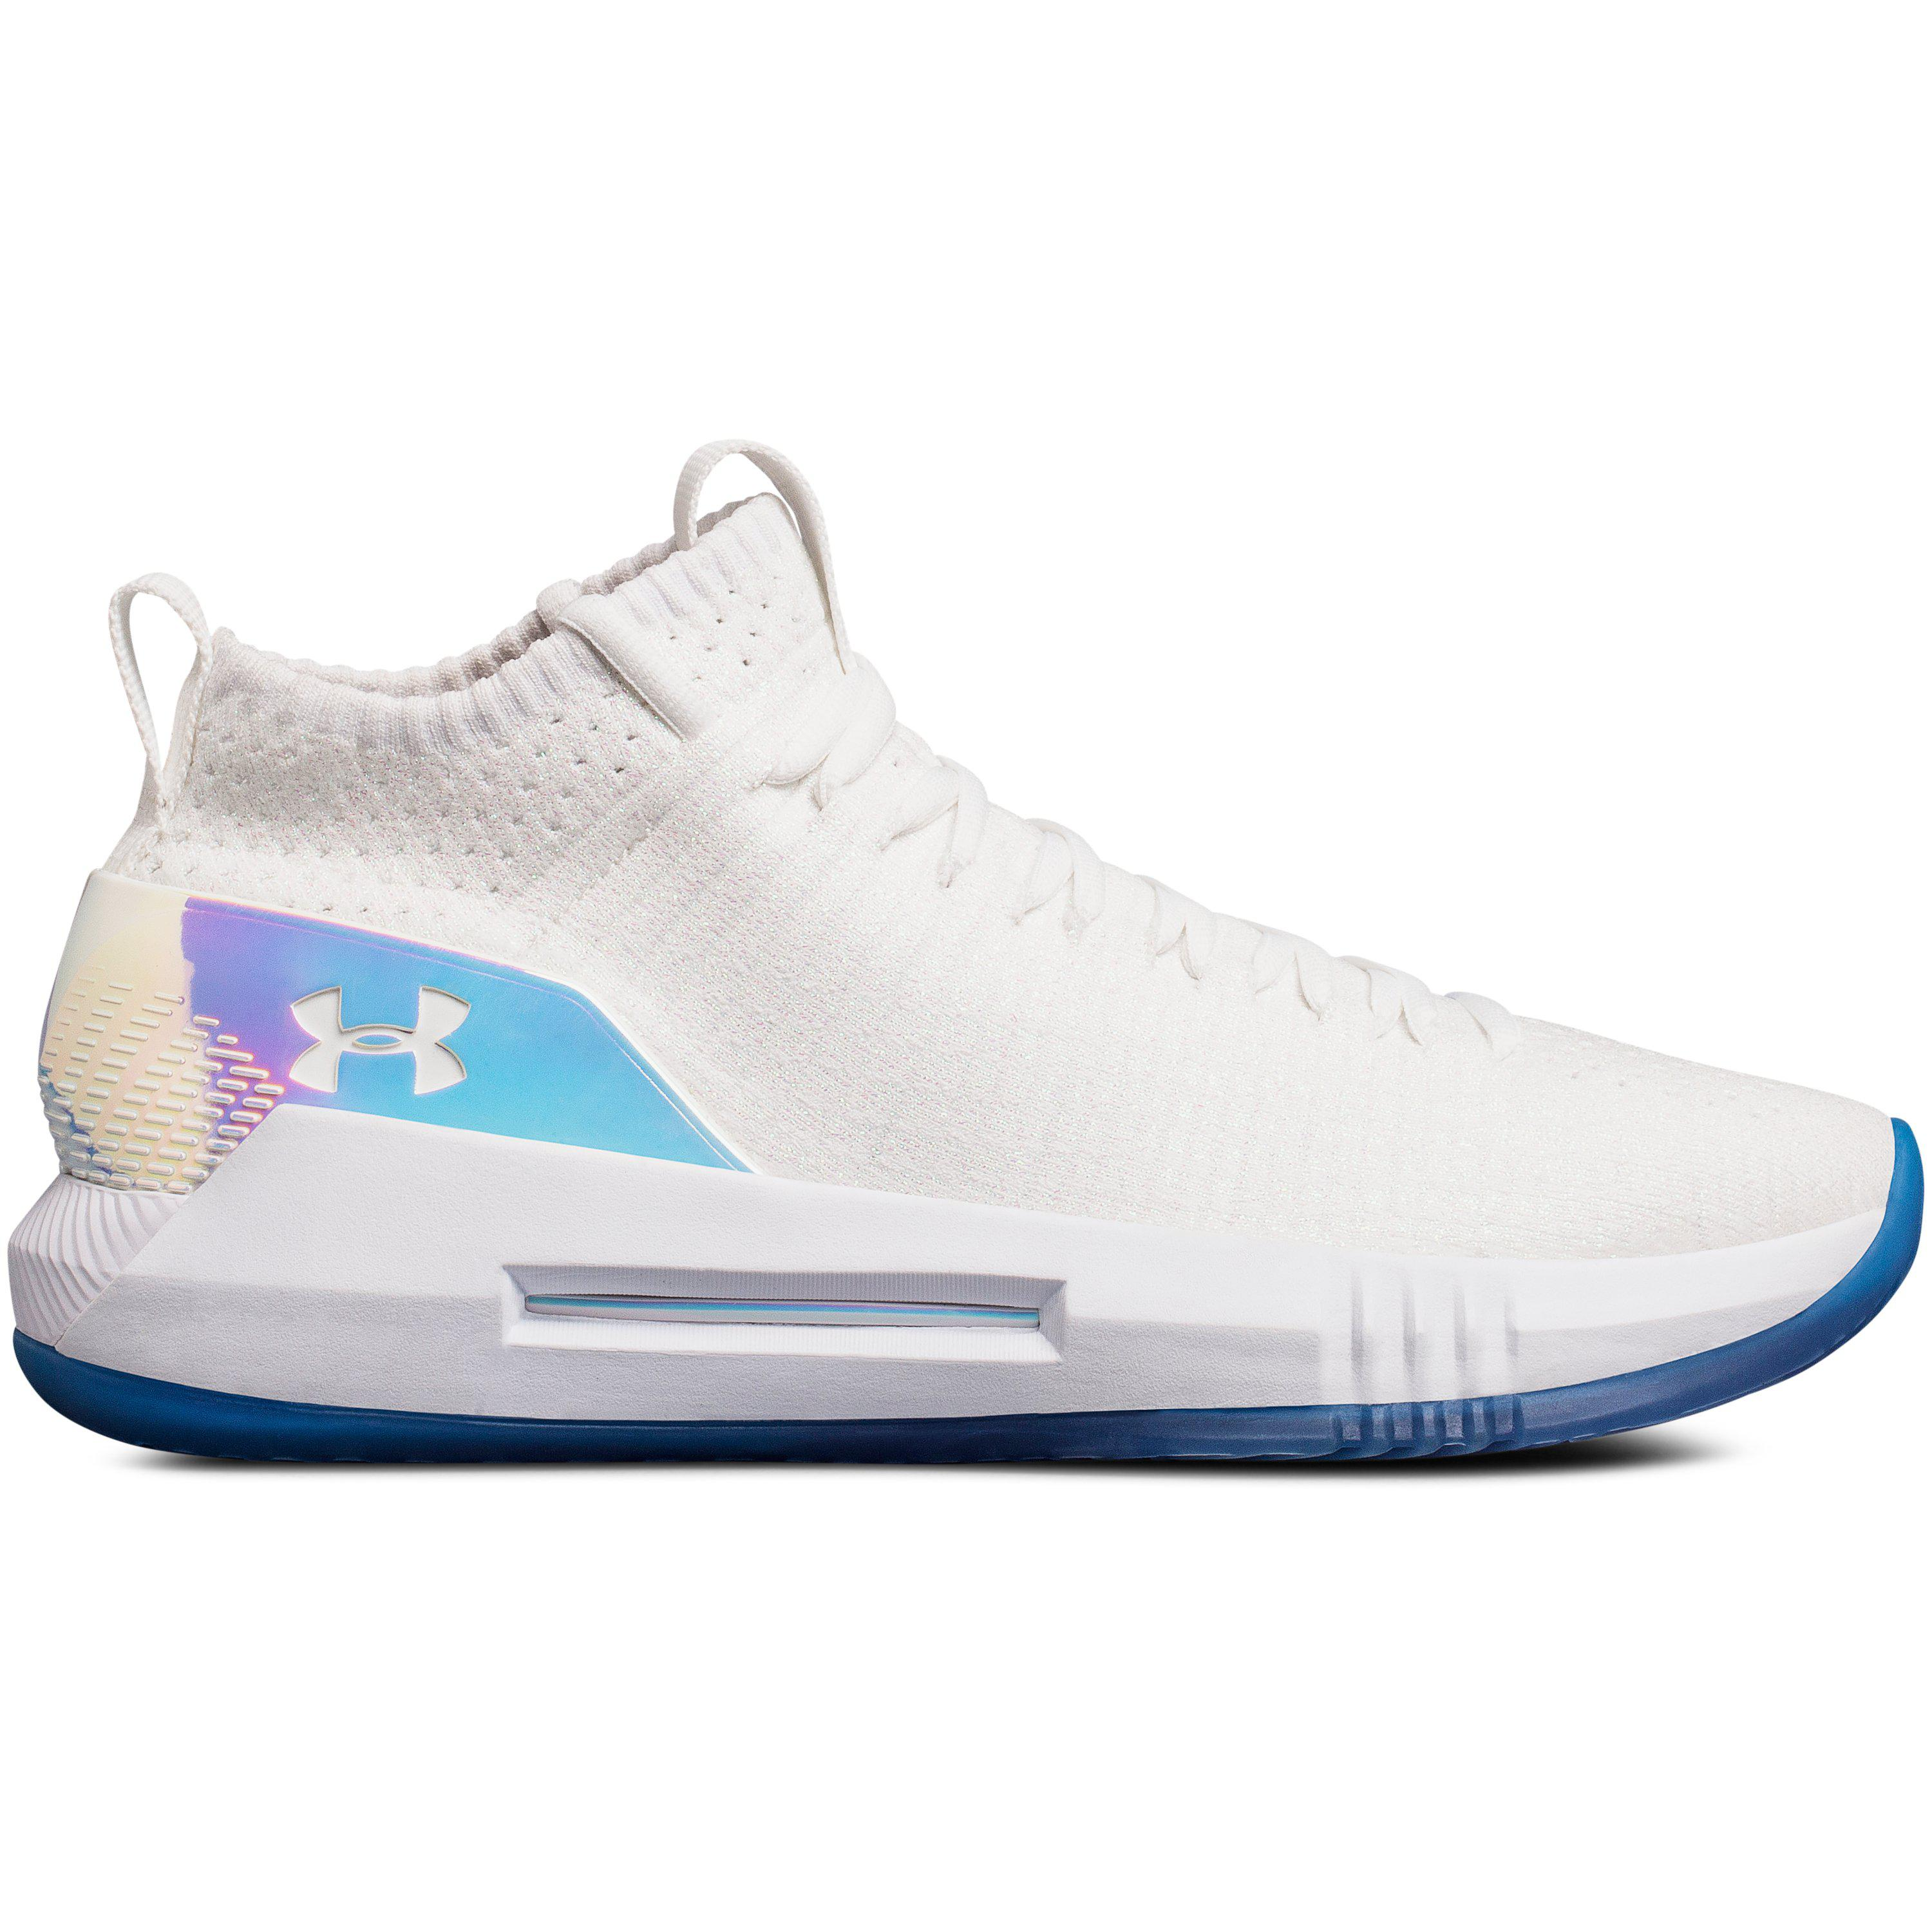 254145335d81 Under Armour Men s Ua Team Heat Seeker Basketball Shoes in White for ...